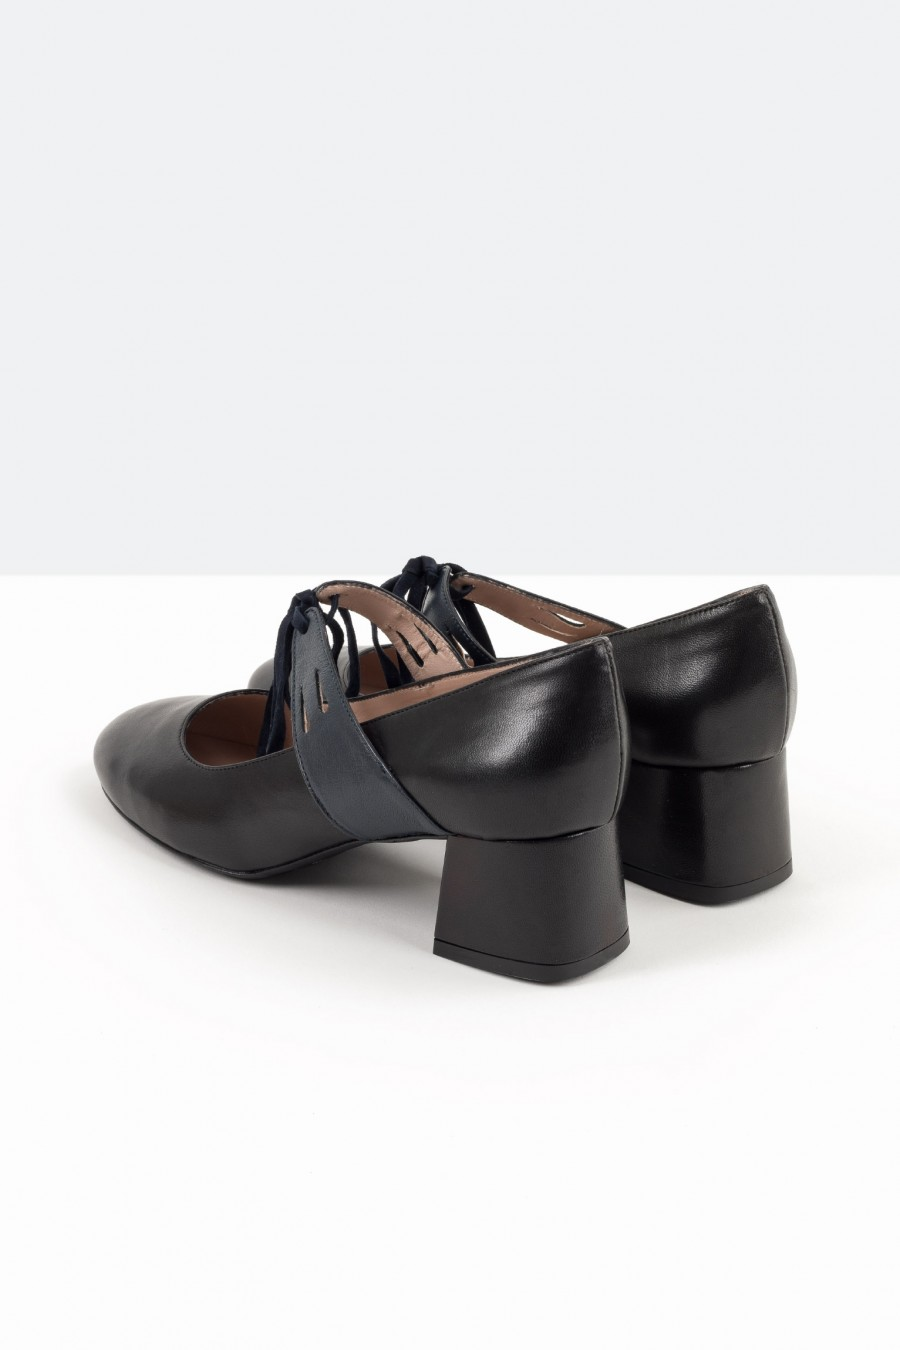 Bebè shoes with straps and ribbons